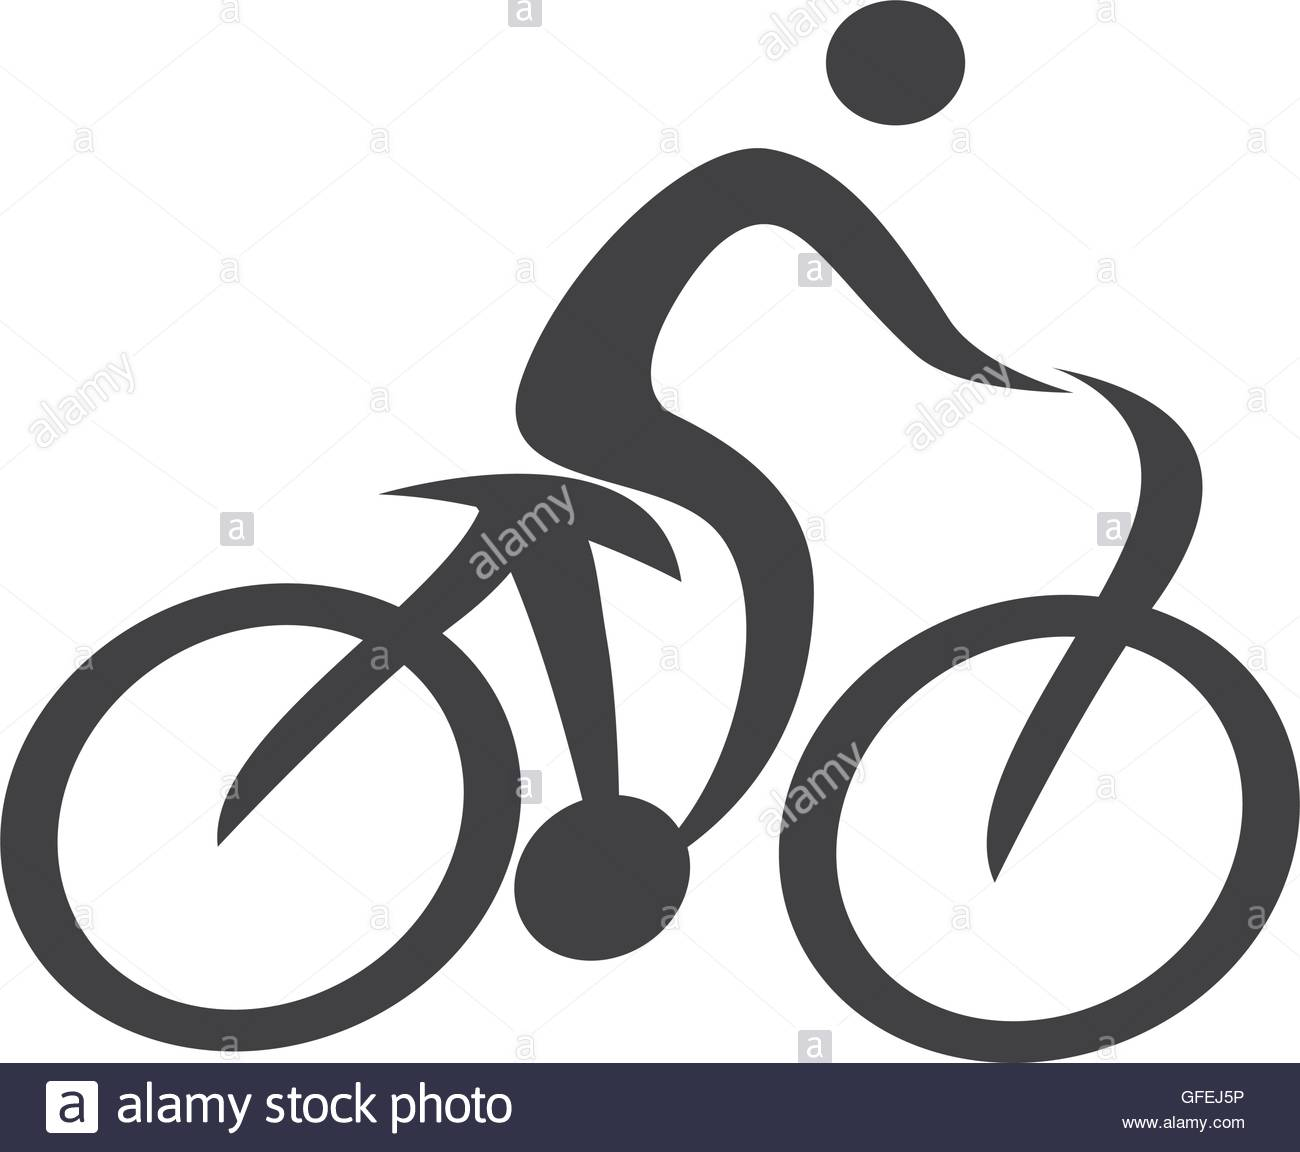 Cycling clipart human silhouette. Figure bicycle icon stock png royalty free library